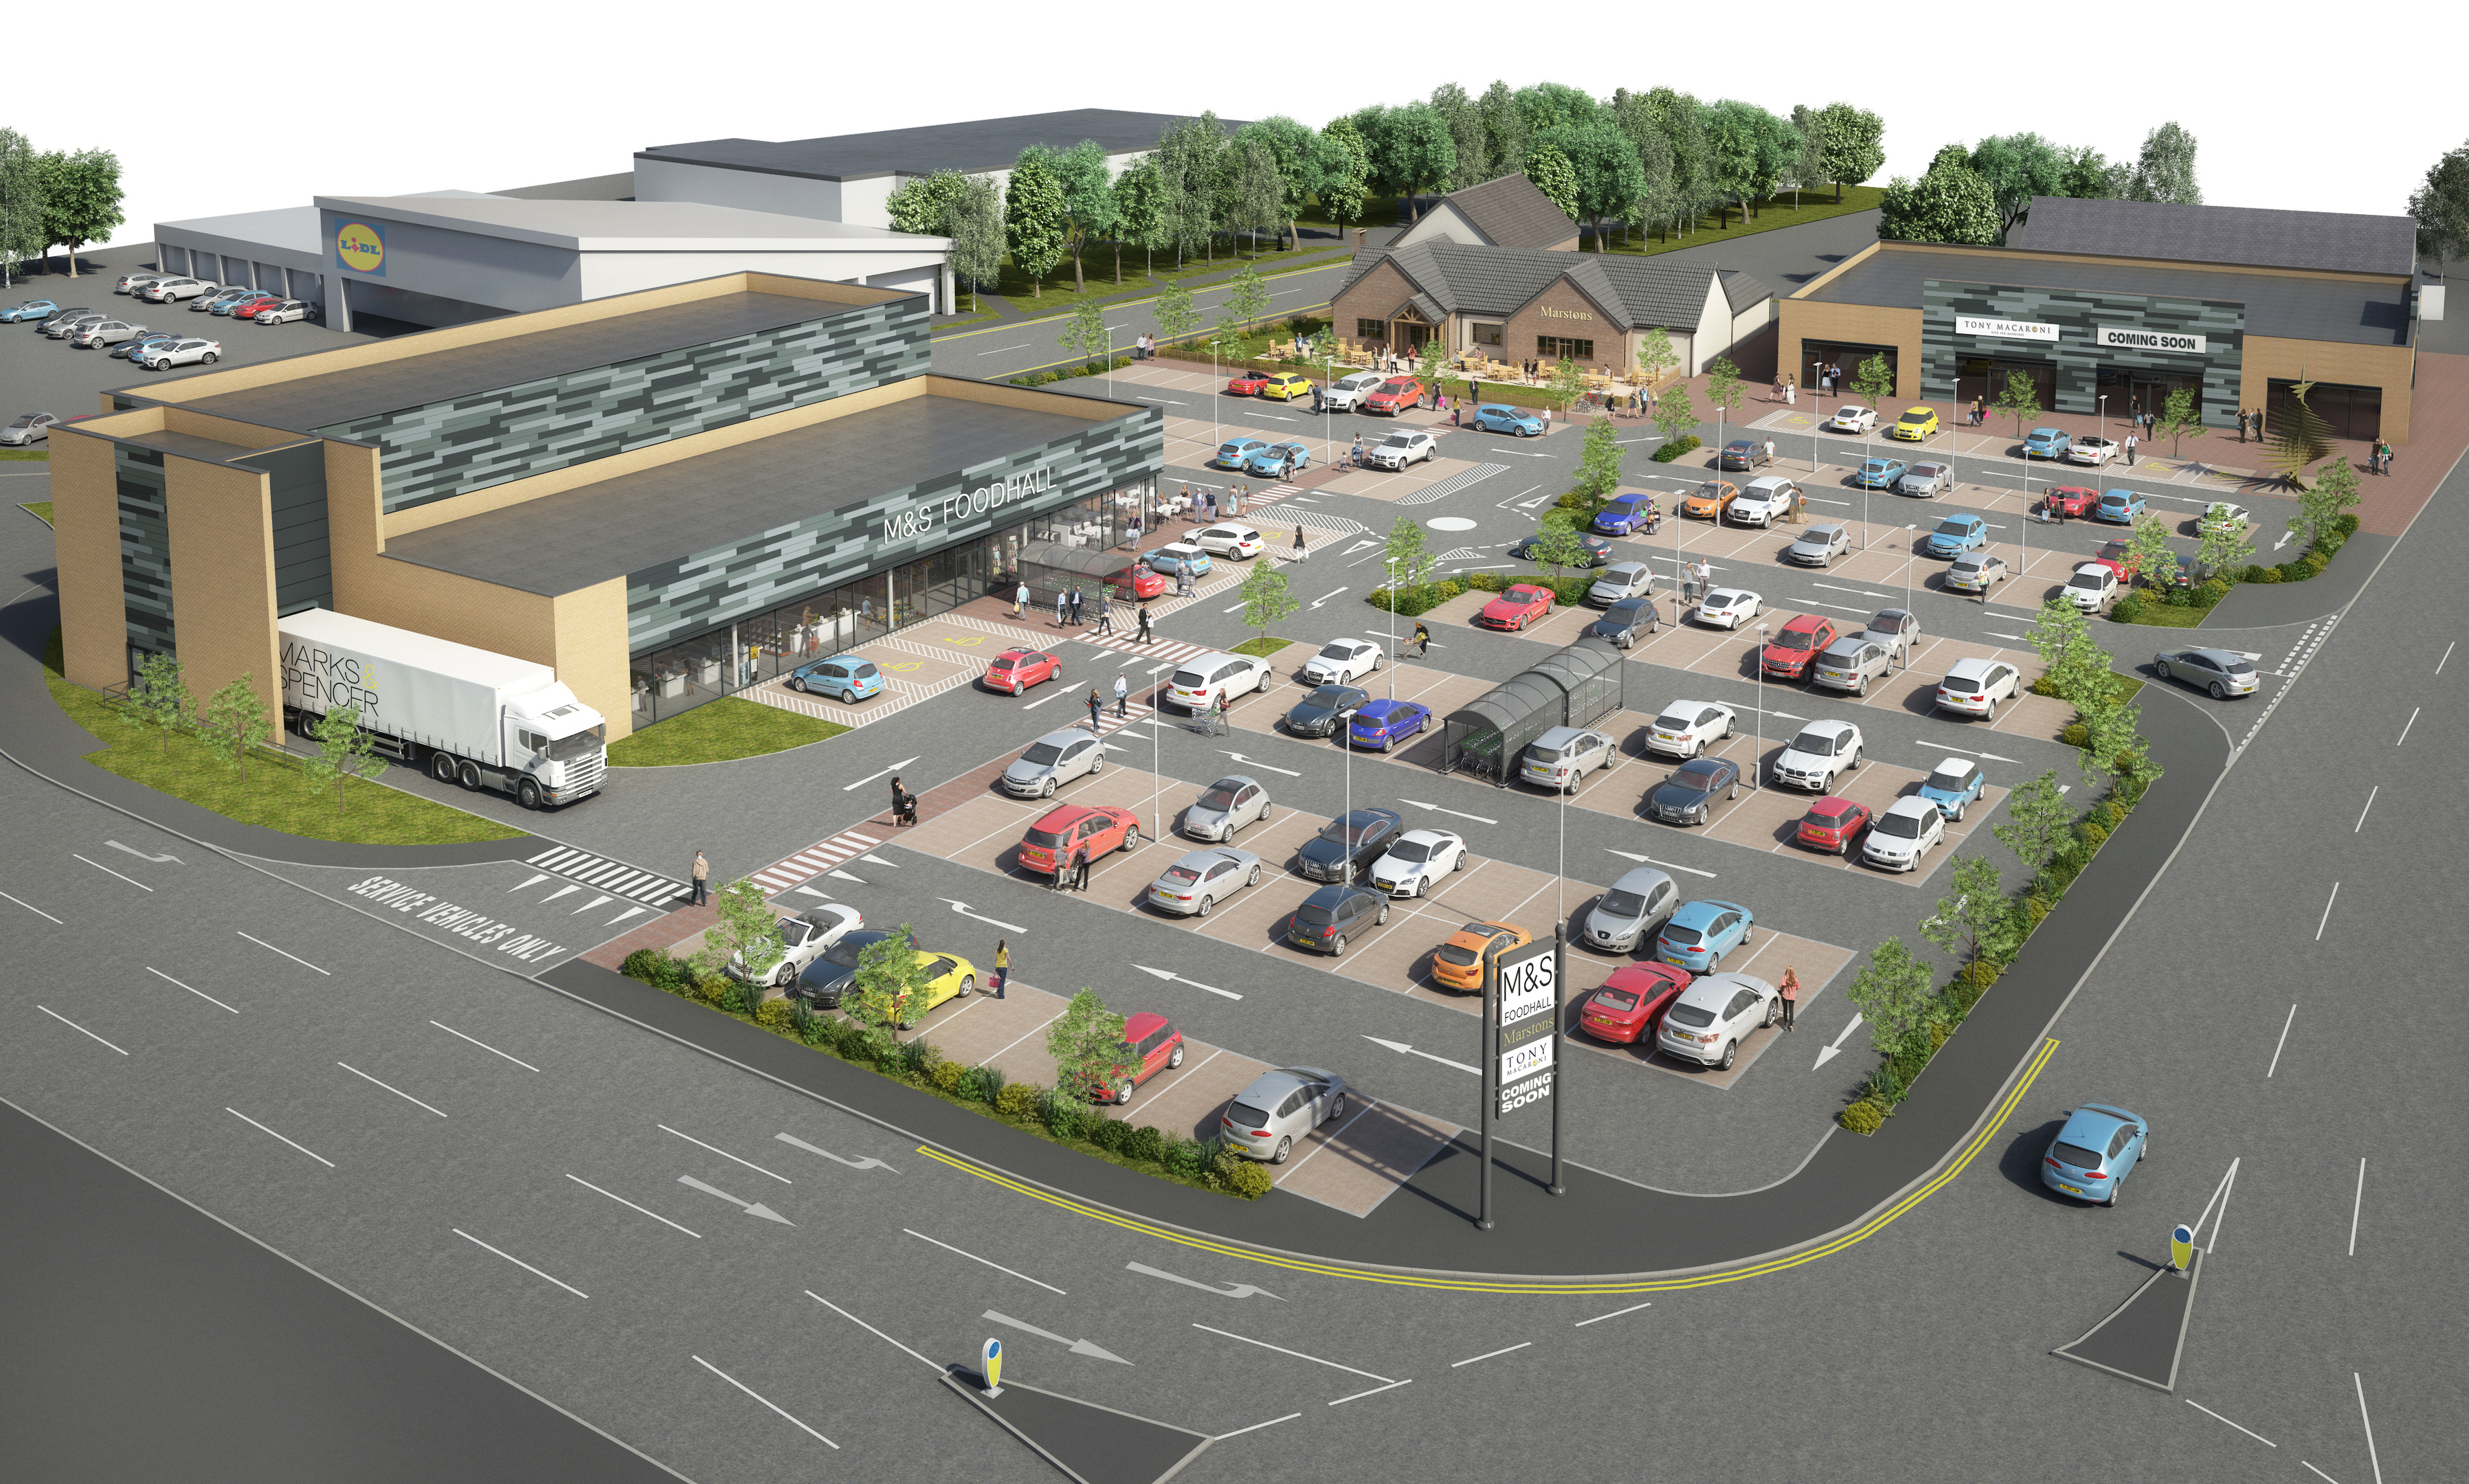 An artist's impression of how Glenrothes will look.